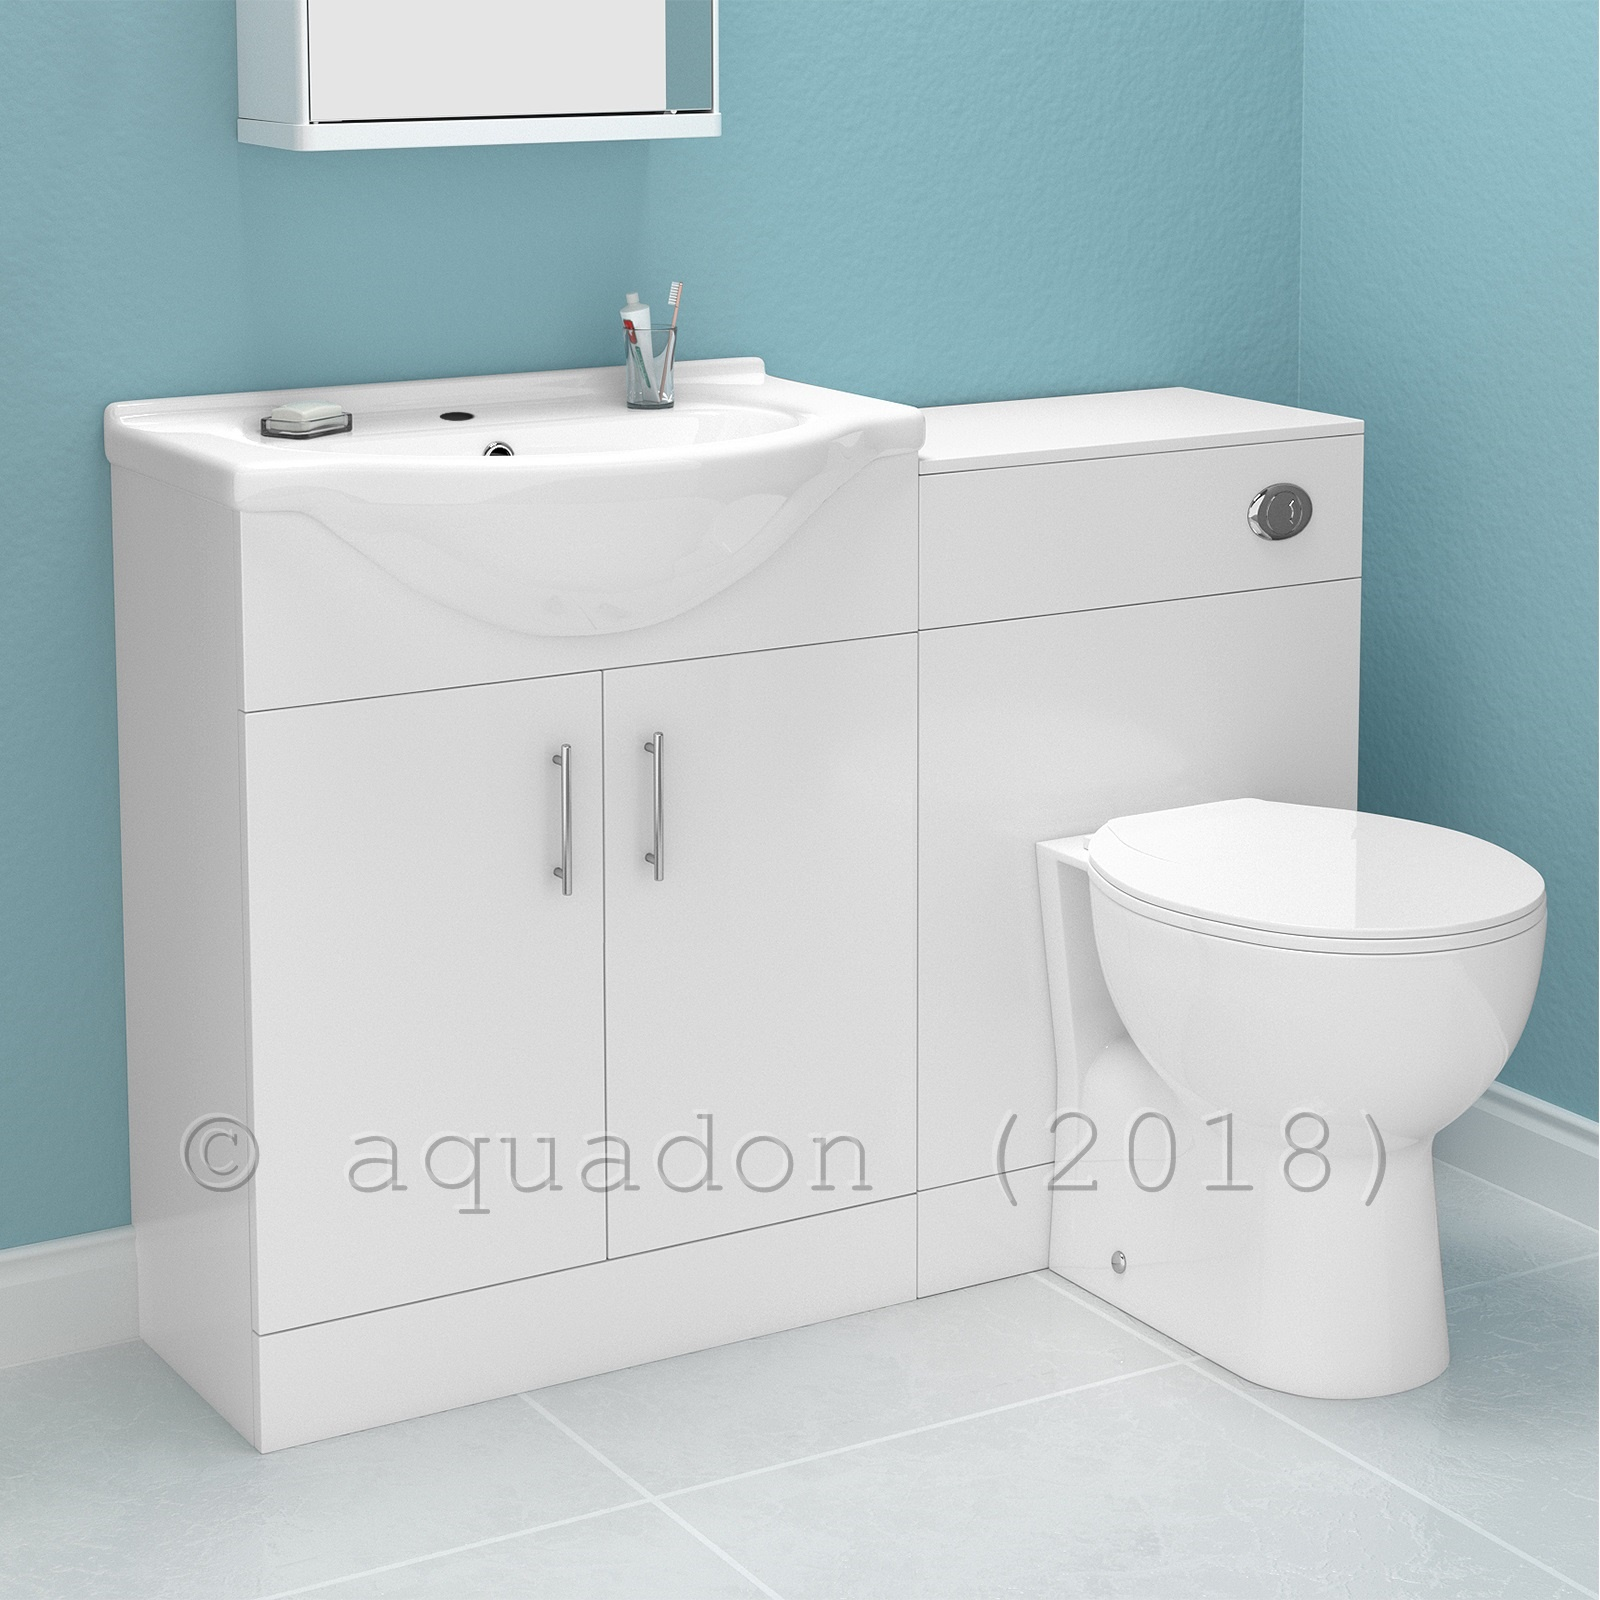 Bathroom Vanity Cabinet With WC Toilet White Furniture ...